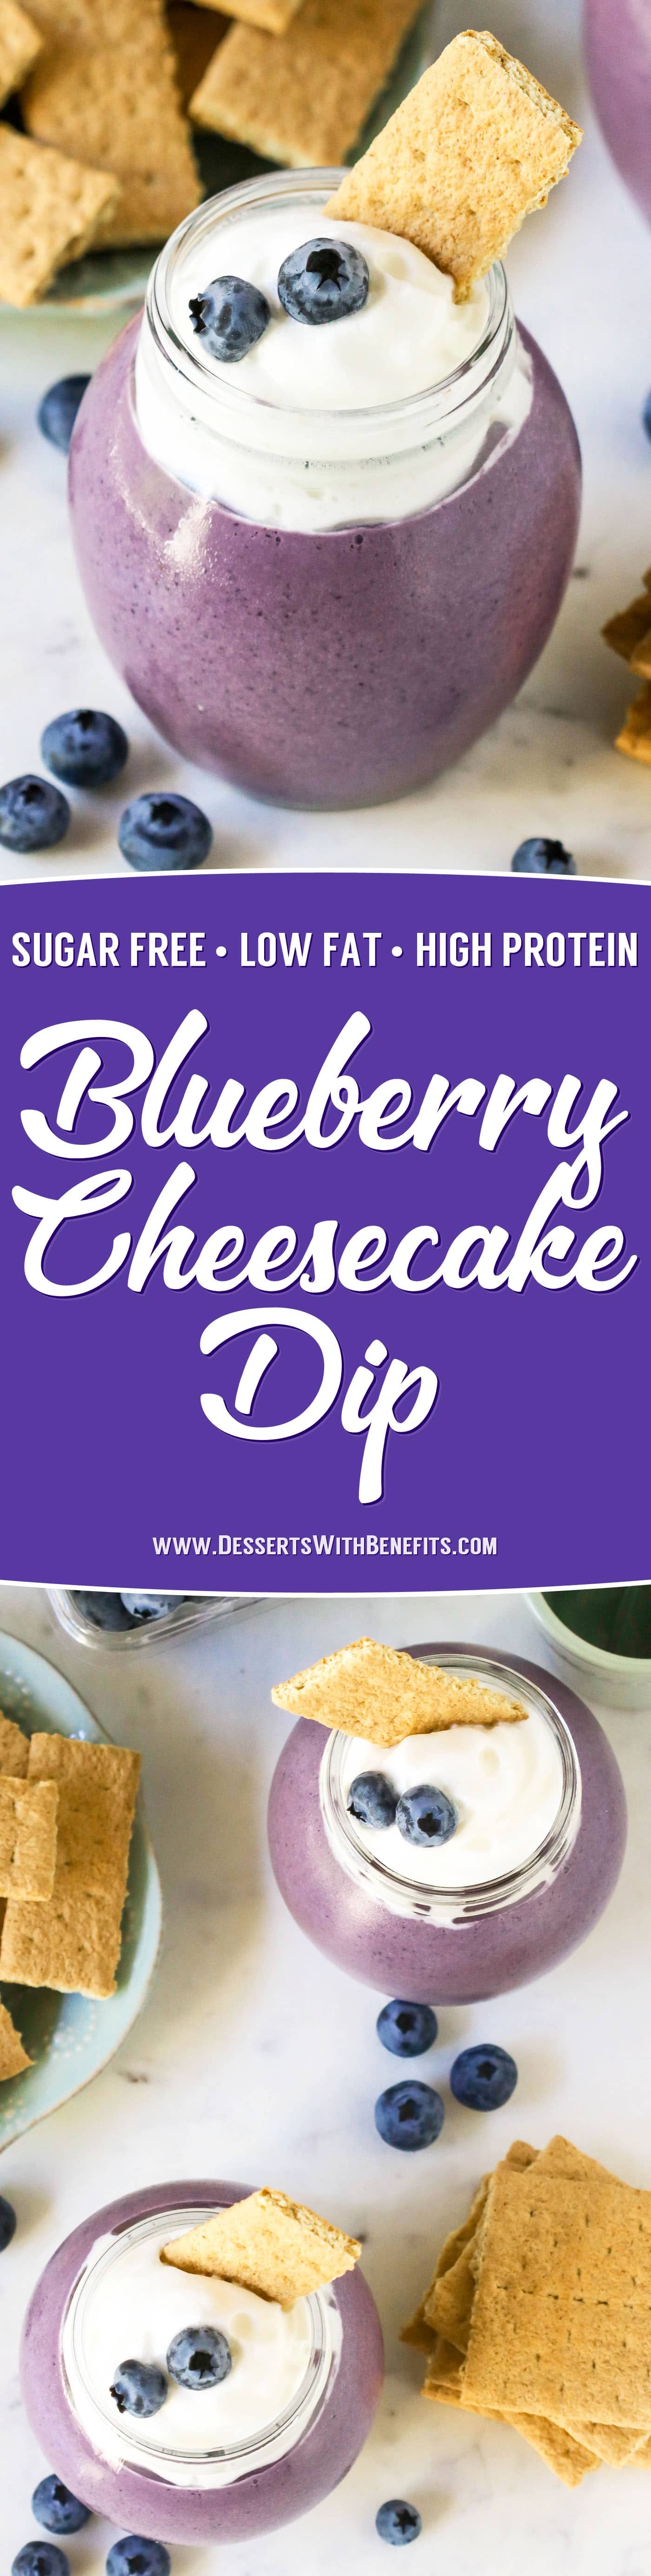 Don't have time to bake off an entire cheesecake? Make this 5-minute Blueberry Cheesecake Dip!It's thick, creamy, and sweet, just like cheesecake batter, but made with the sugar, eggs, butter, and cream cheese! You'd never know it's sugar free, low fat, high protein, and gluten free too!